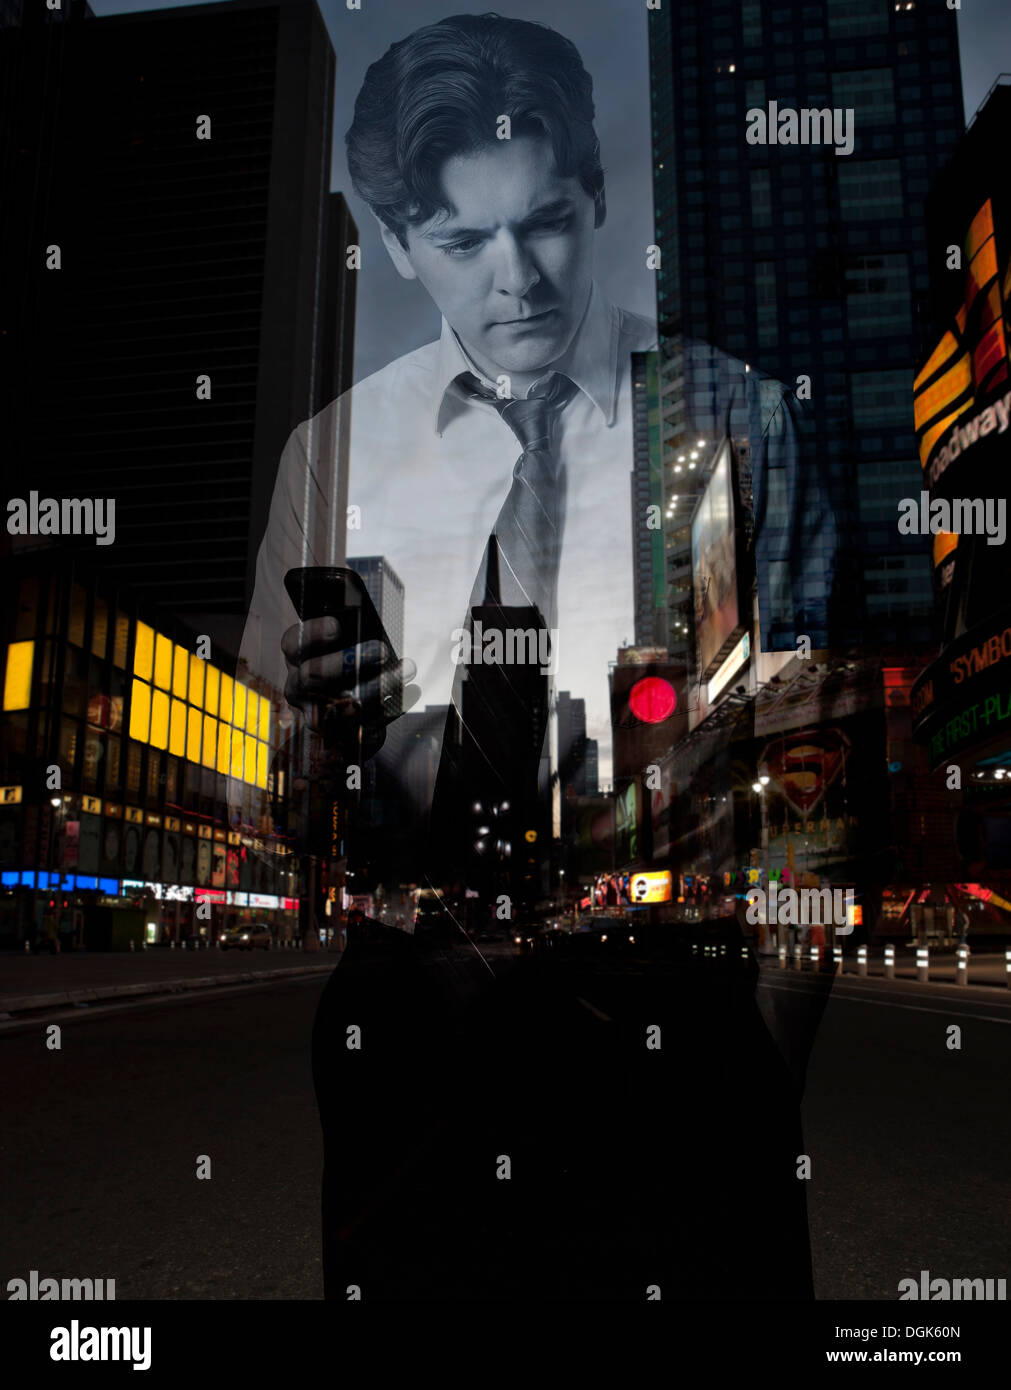 Double exposure of stressed businessman with smartphone against city scene - Stock Image